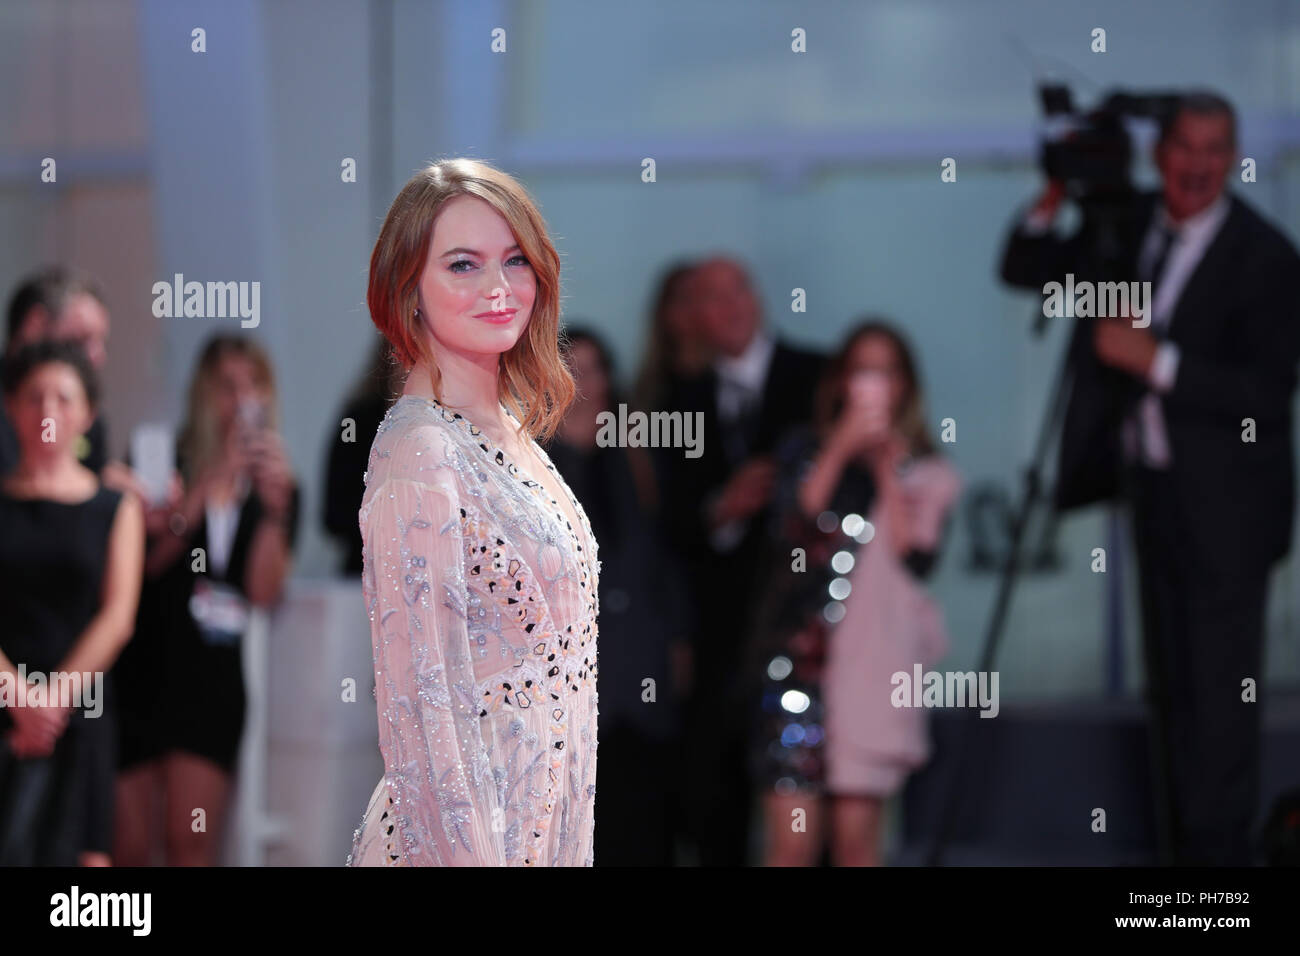 Venice, Italy. 30th Aug, 2018. Actress Emma Stone attends the premiere of film 'The Favourite' at the 75th Venice International Film Festival in Venice, Italy, Aug. 30, 2018. Credit: Cheng Tingting/Xinhua/Alamy Live News - Stock Image